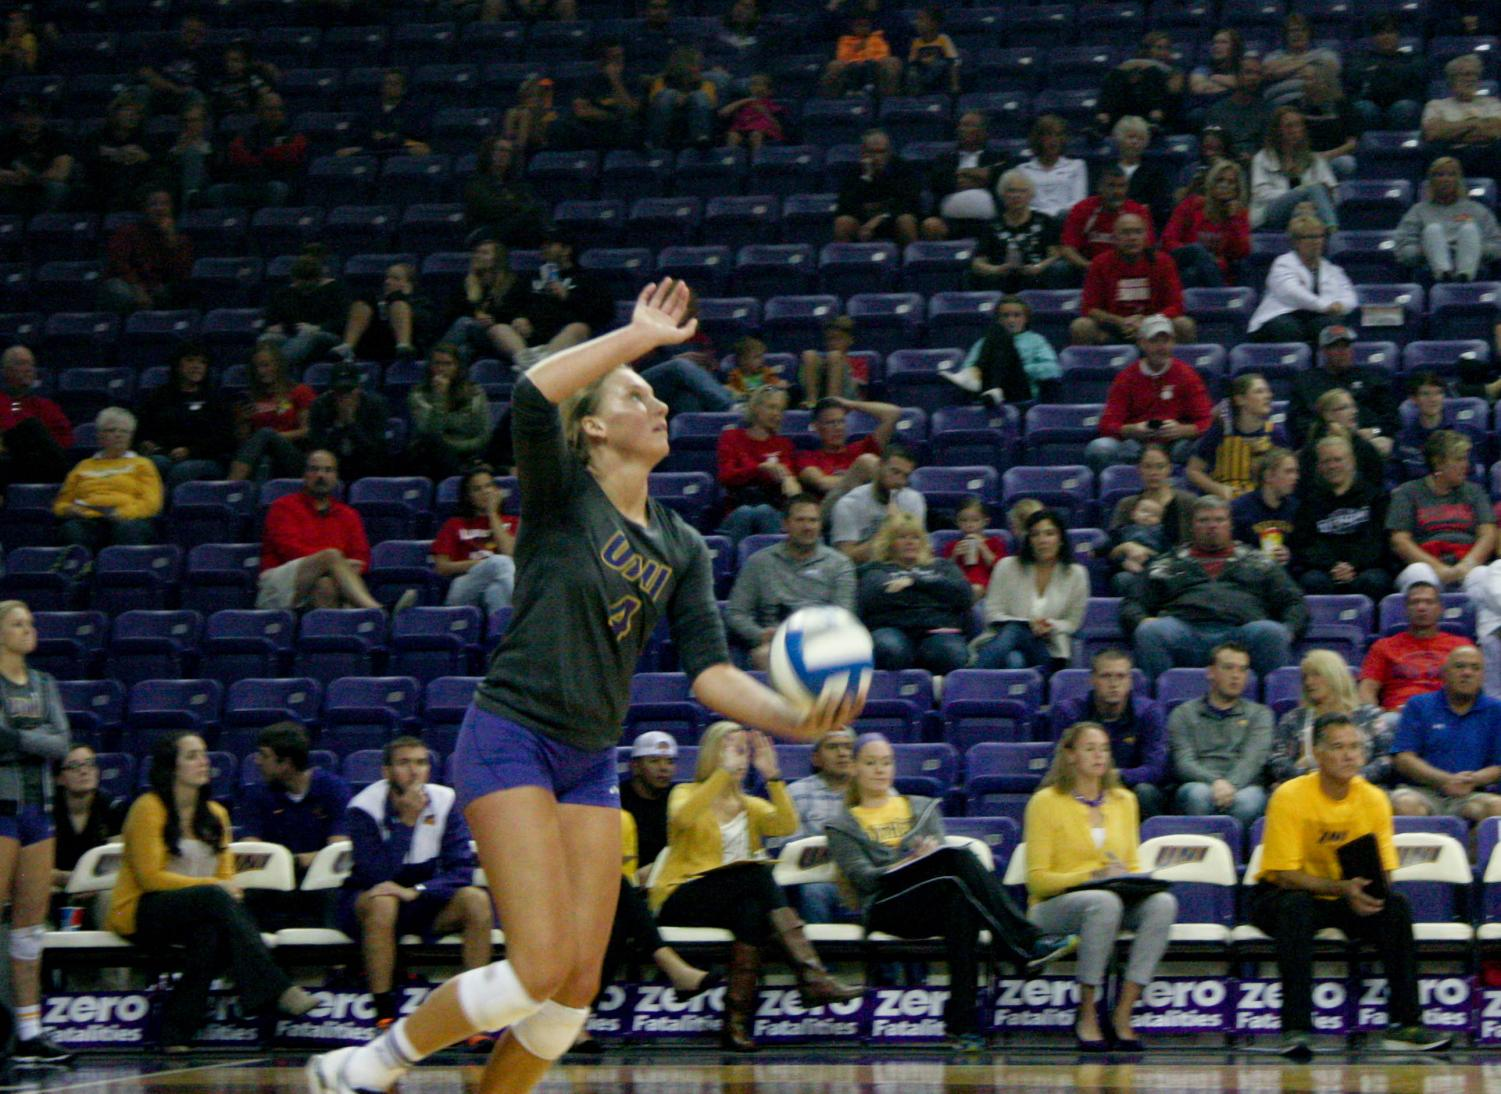 Bri Weber, No. 4, earned 13 points at the game against Southern Illinois. Weber is an outside hitter and has started in 31 matches during this current season.